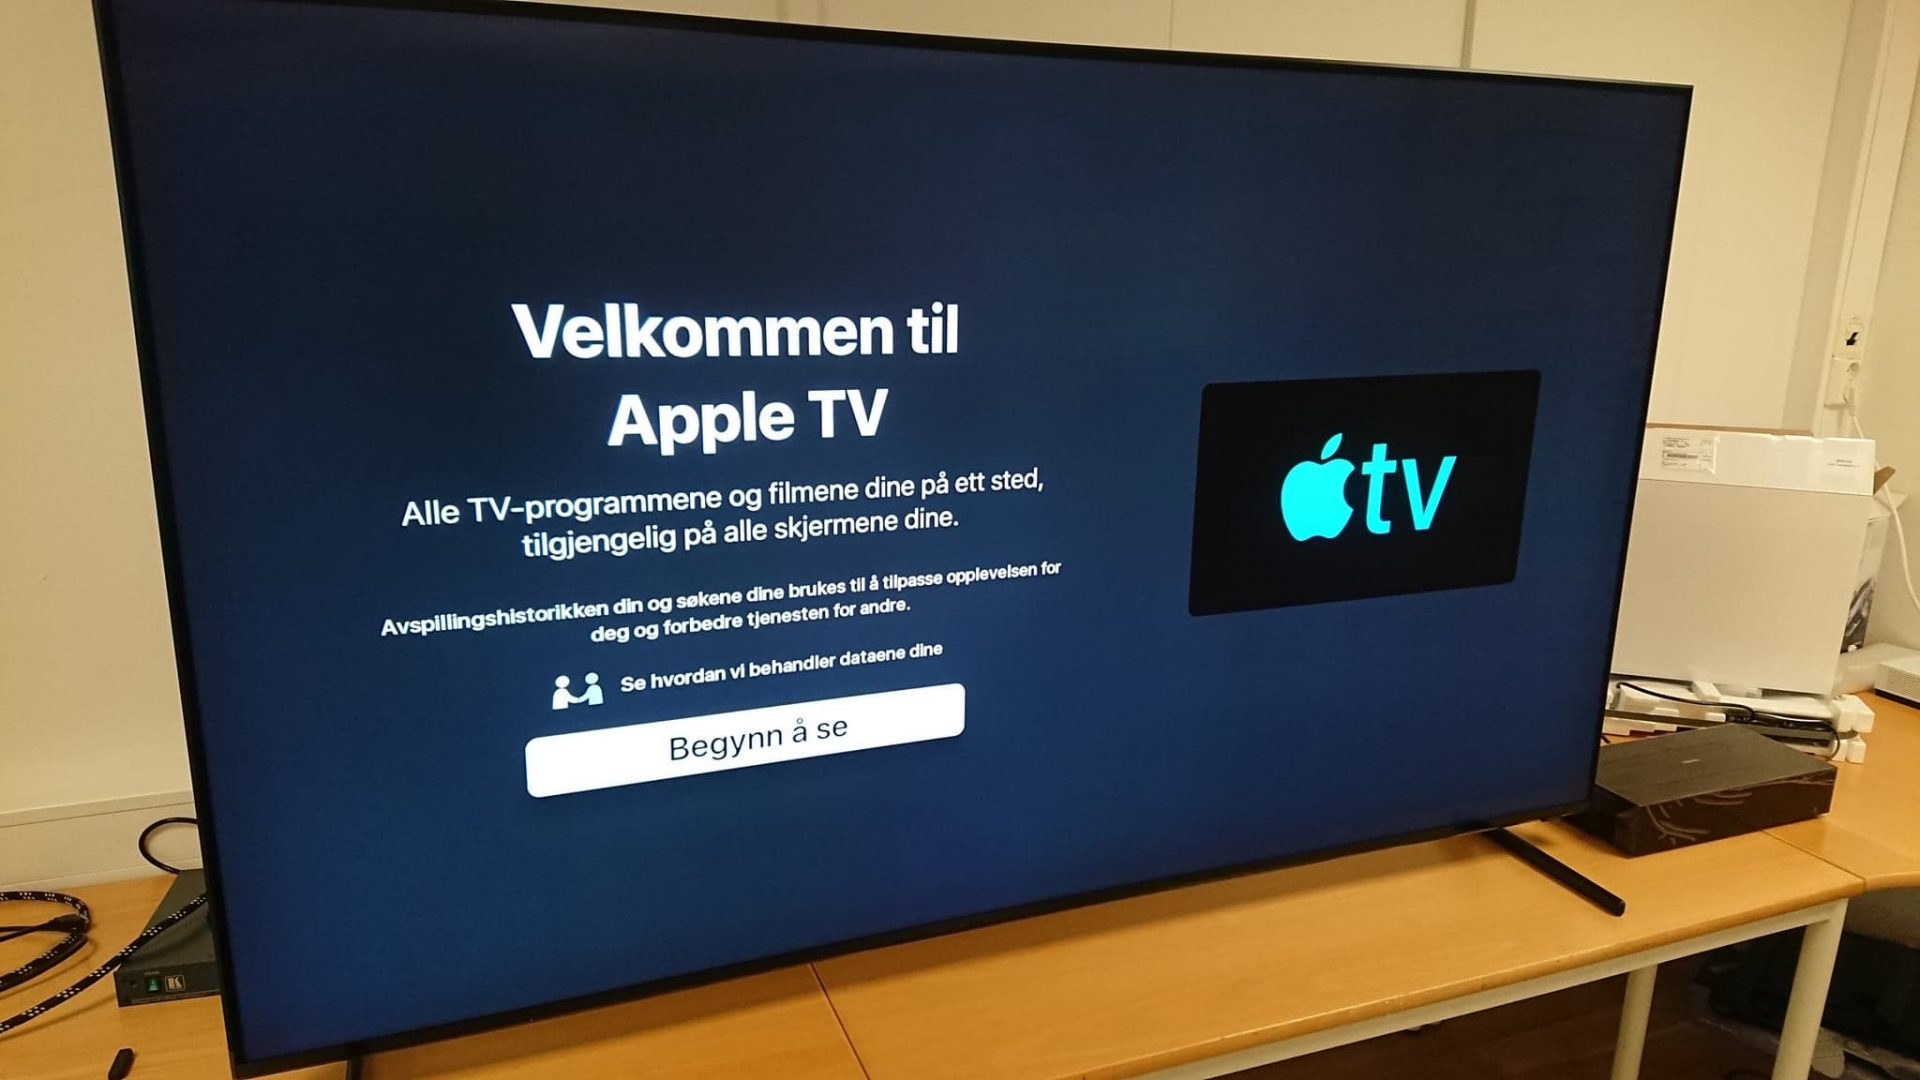 NEW: Apple TV app – Apple's new TV app launched in Norway